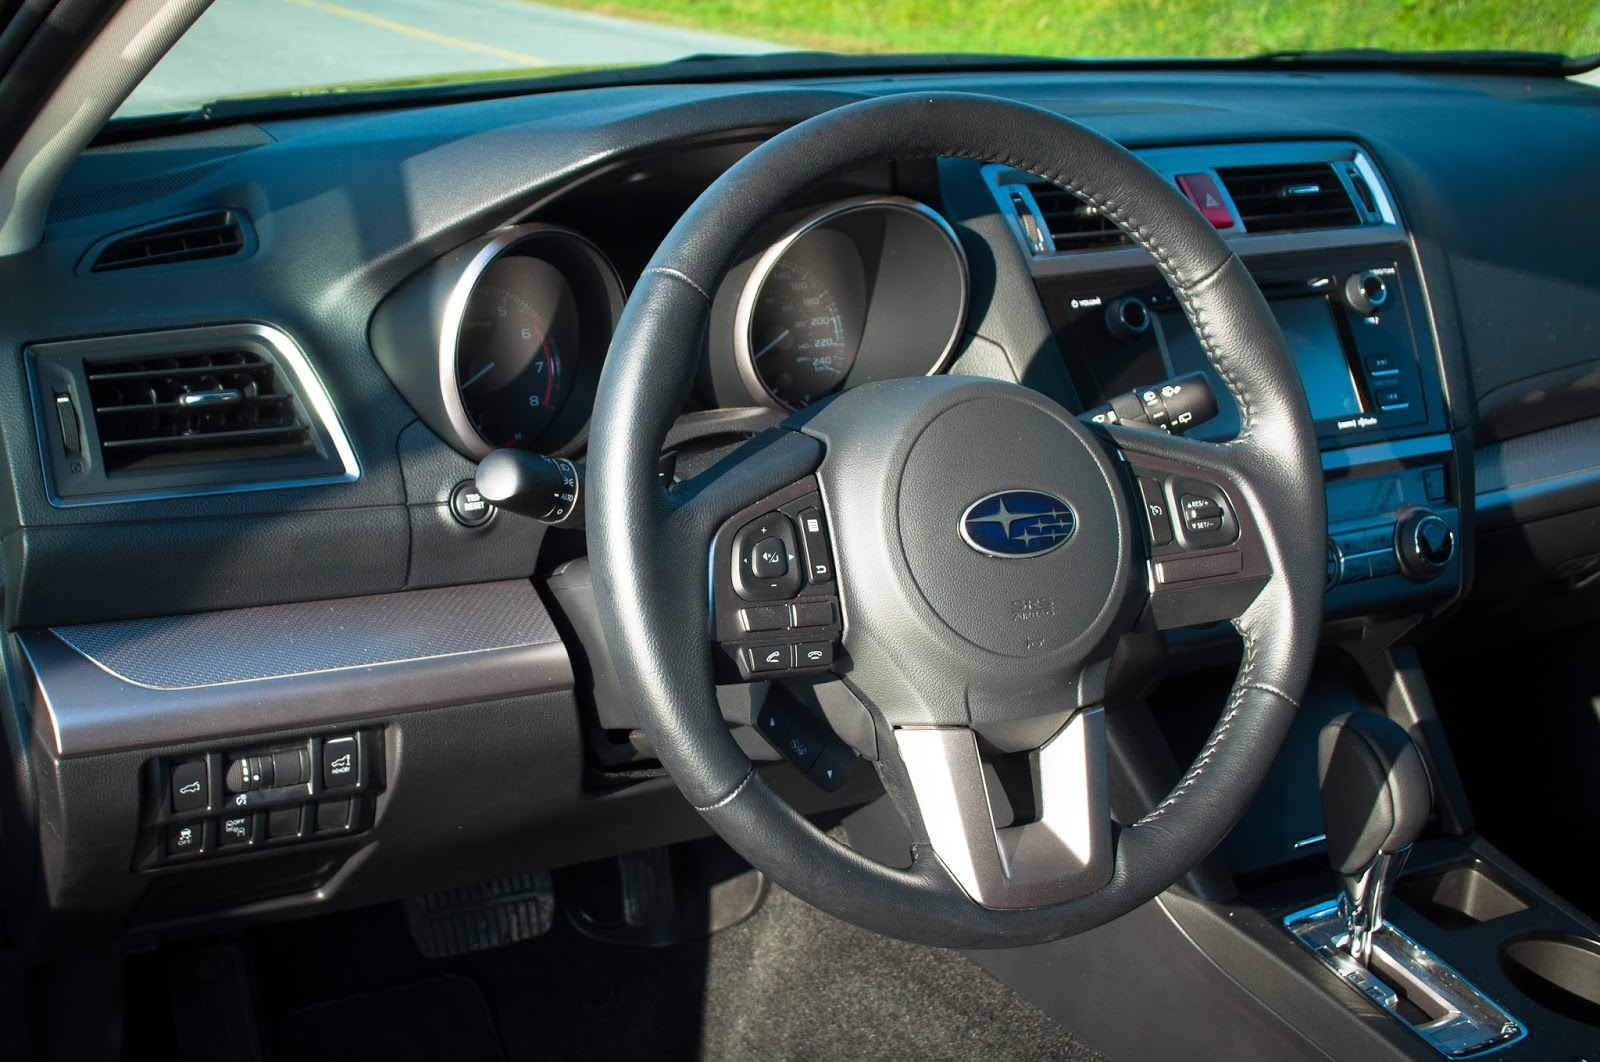 2015 subaru outback 25i touring review a new 20 year old idea 2015 subaru outback 25i touring interior vanachro Gallery